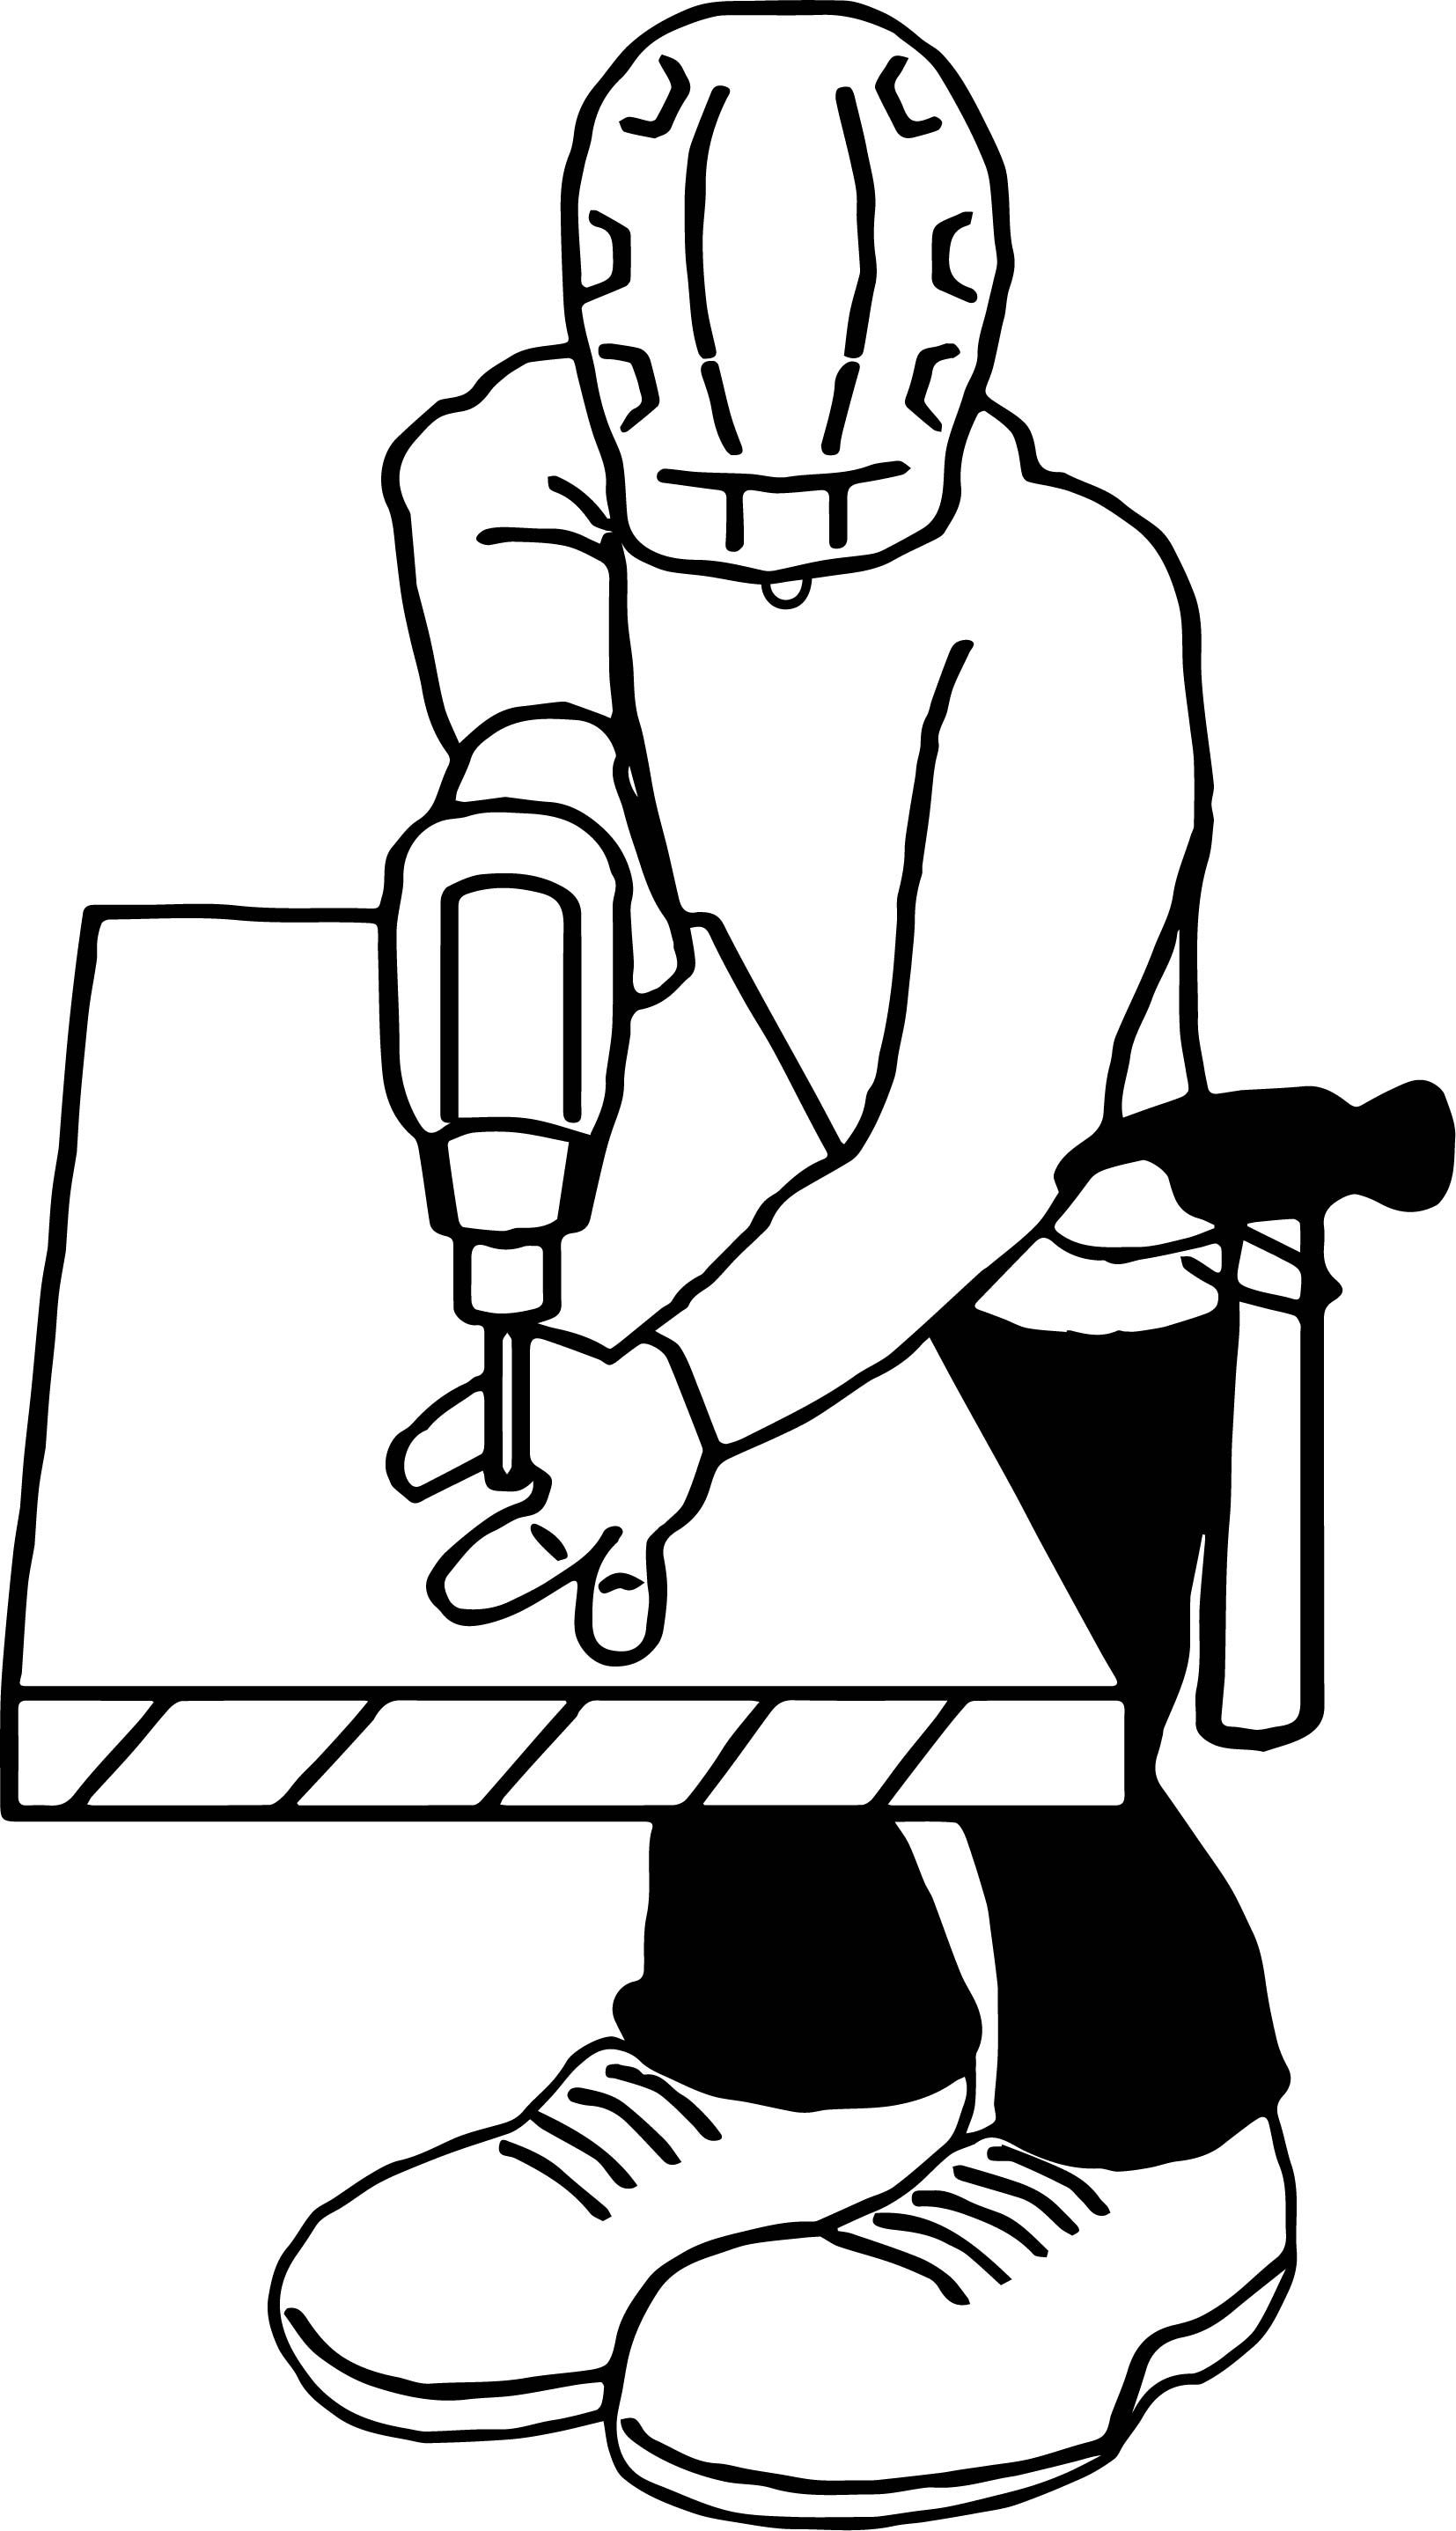 Awesome Carpenter Drill Coloring Page Coloring Pages For Boys